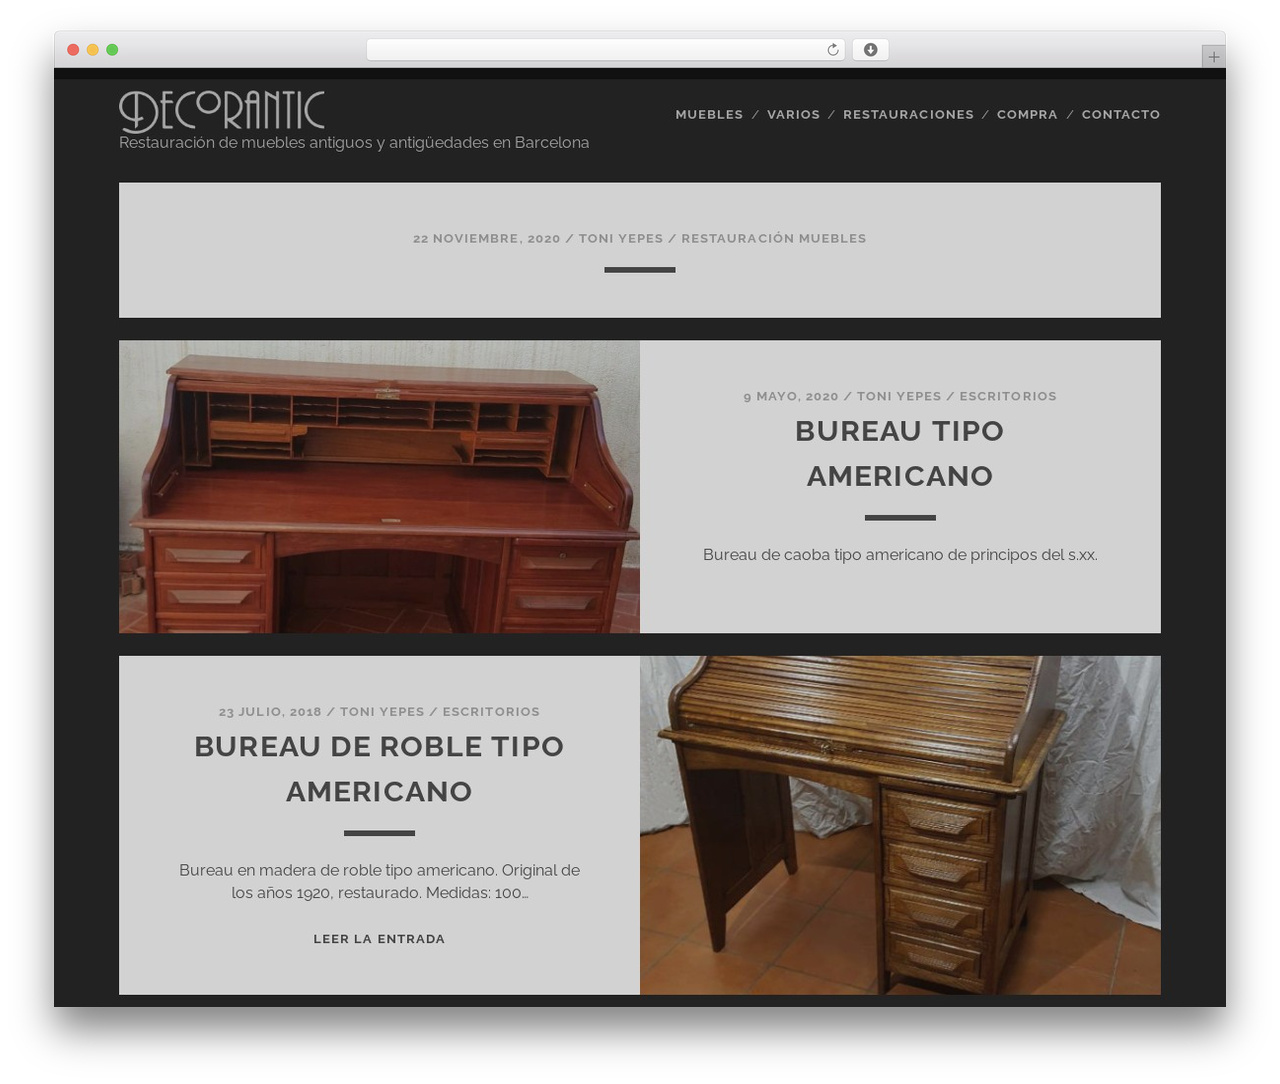 Compro Muebles Antiguos Barcelona Tracks Wordpress Theme By Compete Themes Decoranticyepes